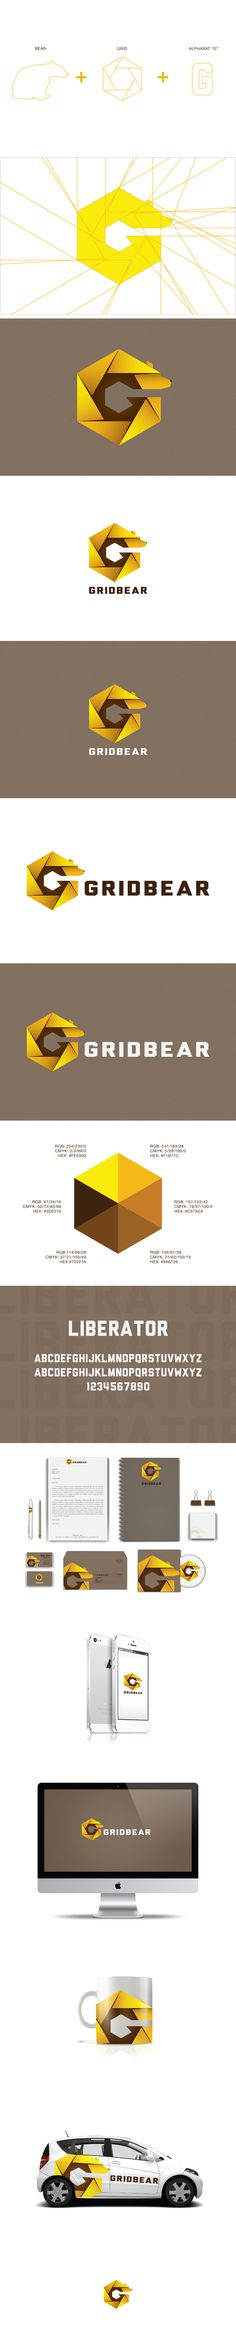 GridBear Visual Identity | #stationary #corporate #design #corporatedesign #identity #branding #marketing repinned by www.BlickeDeeler.de | Visit our website: www.blickedeeler.de/leistungen/corporate-design